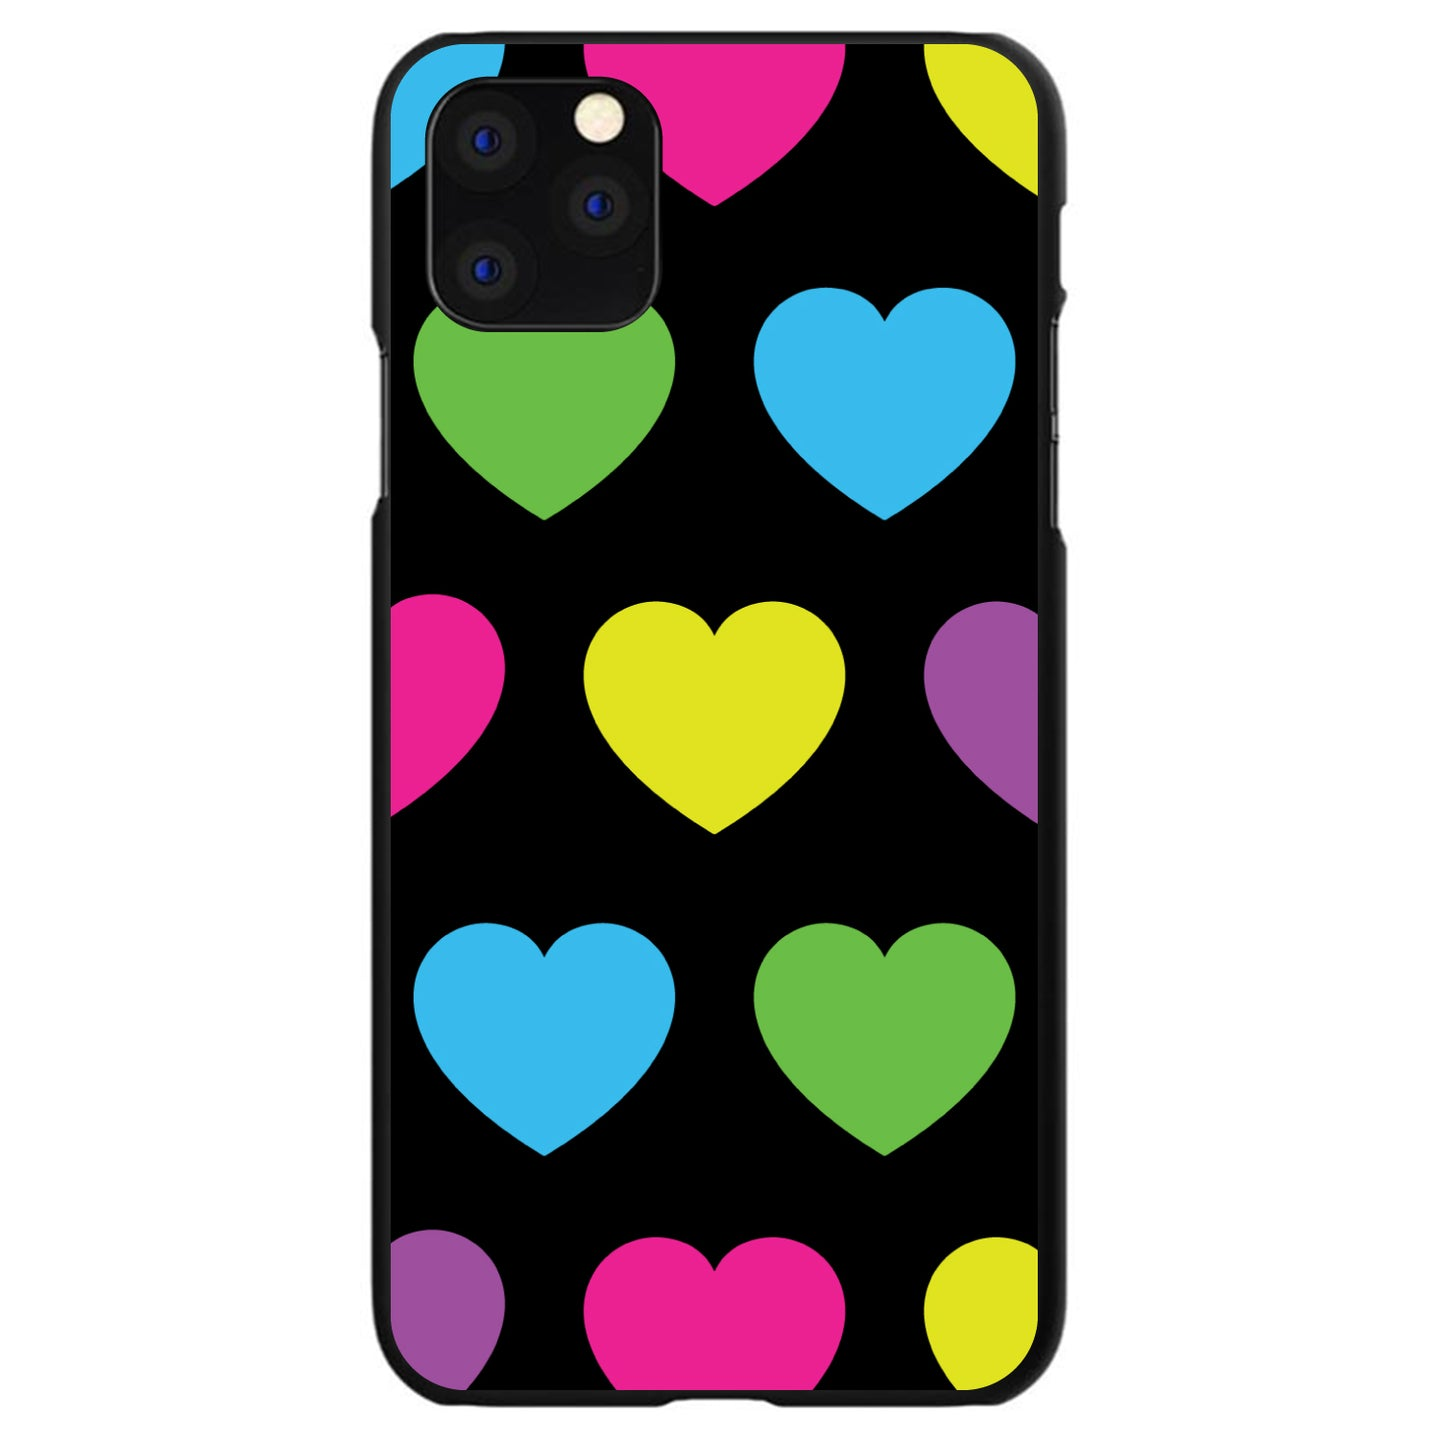 DistinctInk® Hard Plastic Snap-On Case for Apple iPhone - Black Multi Color Hearts